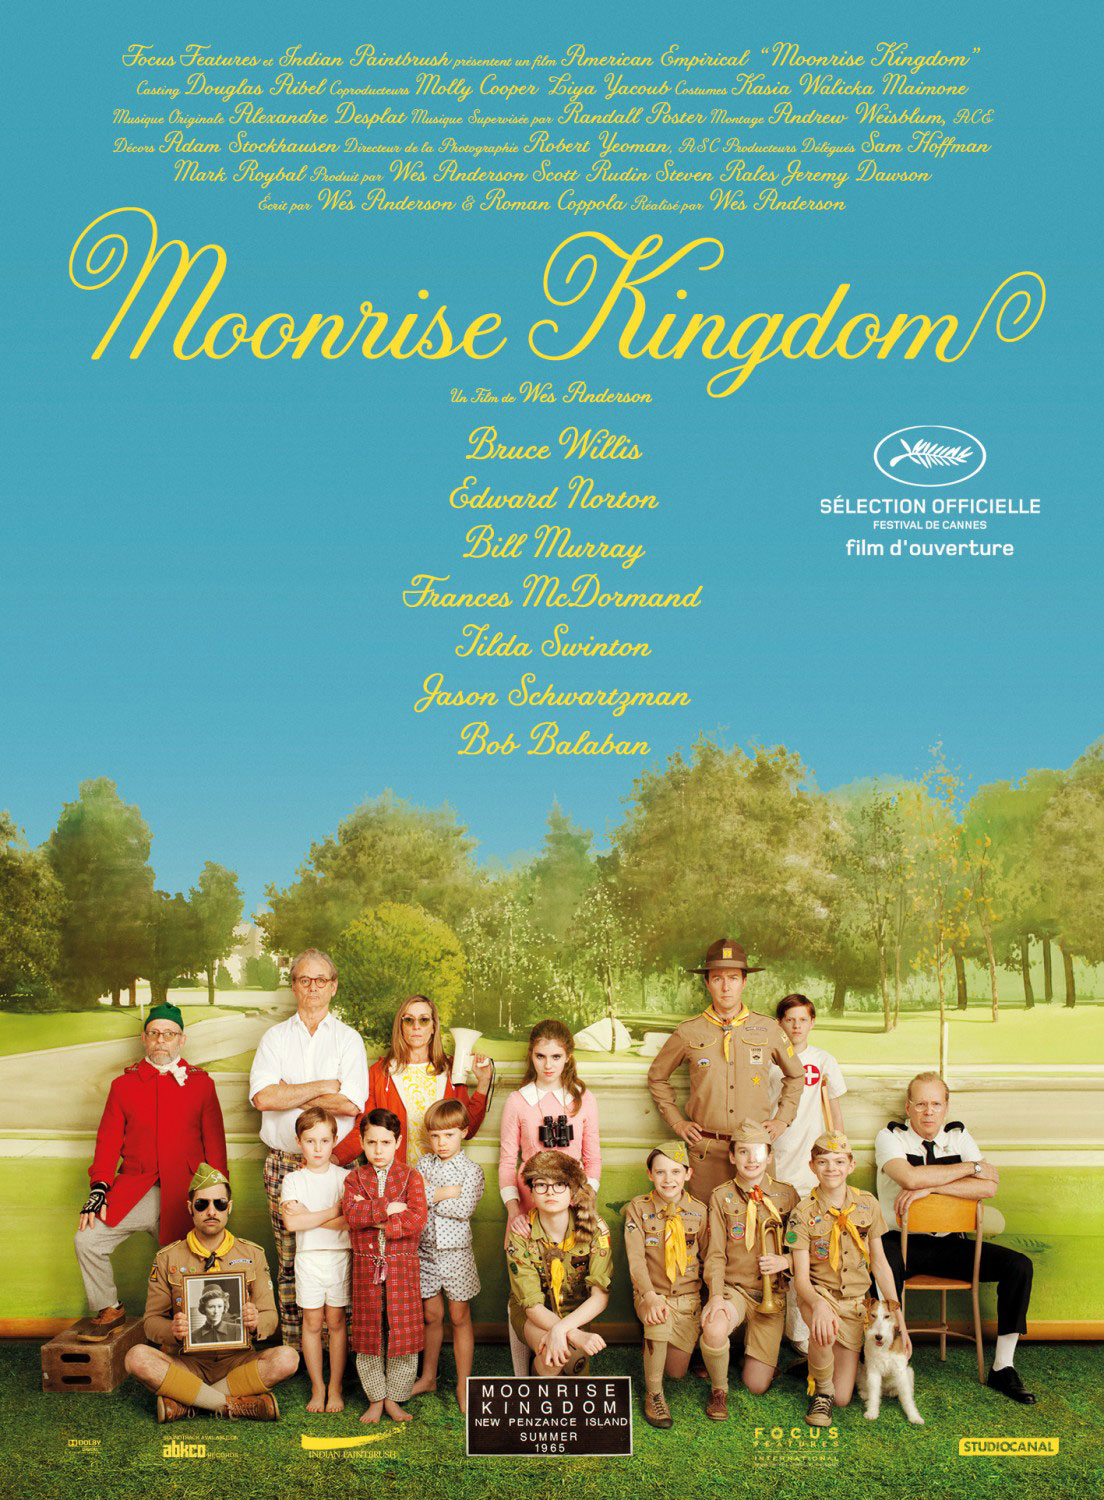 Faviana Interns Favs moonrise kingdom